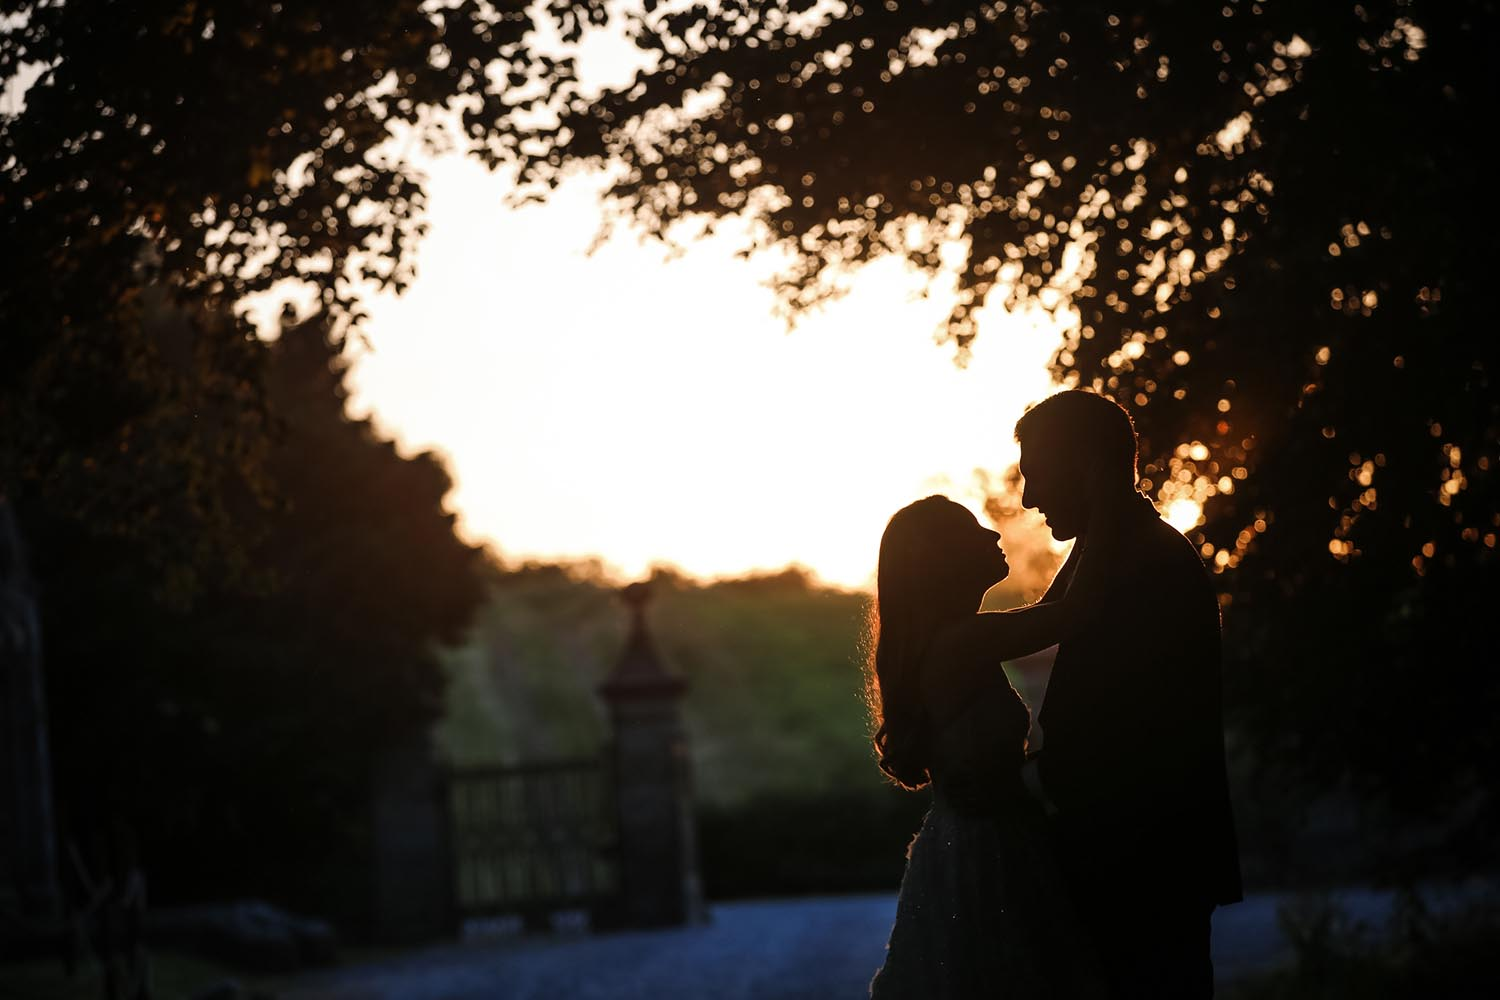 Silhouette of a newly married couple at sunset